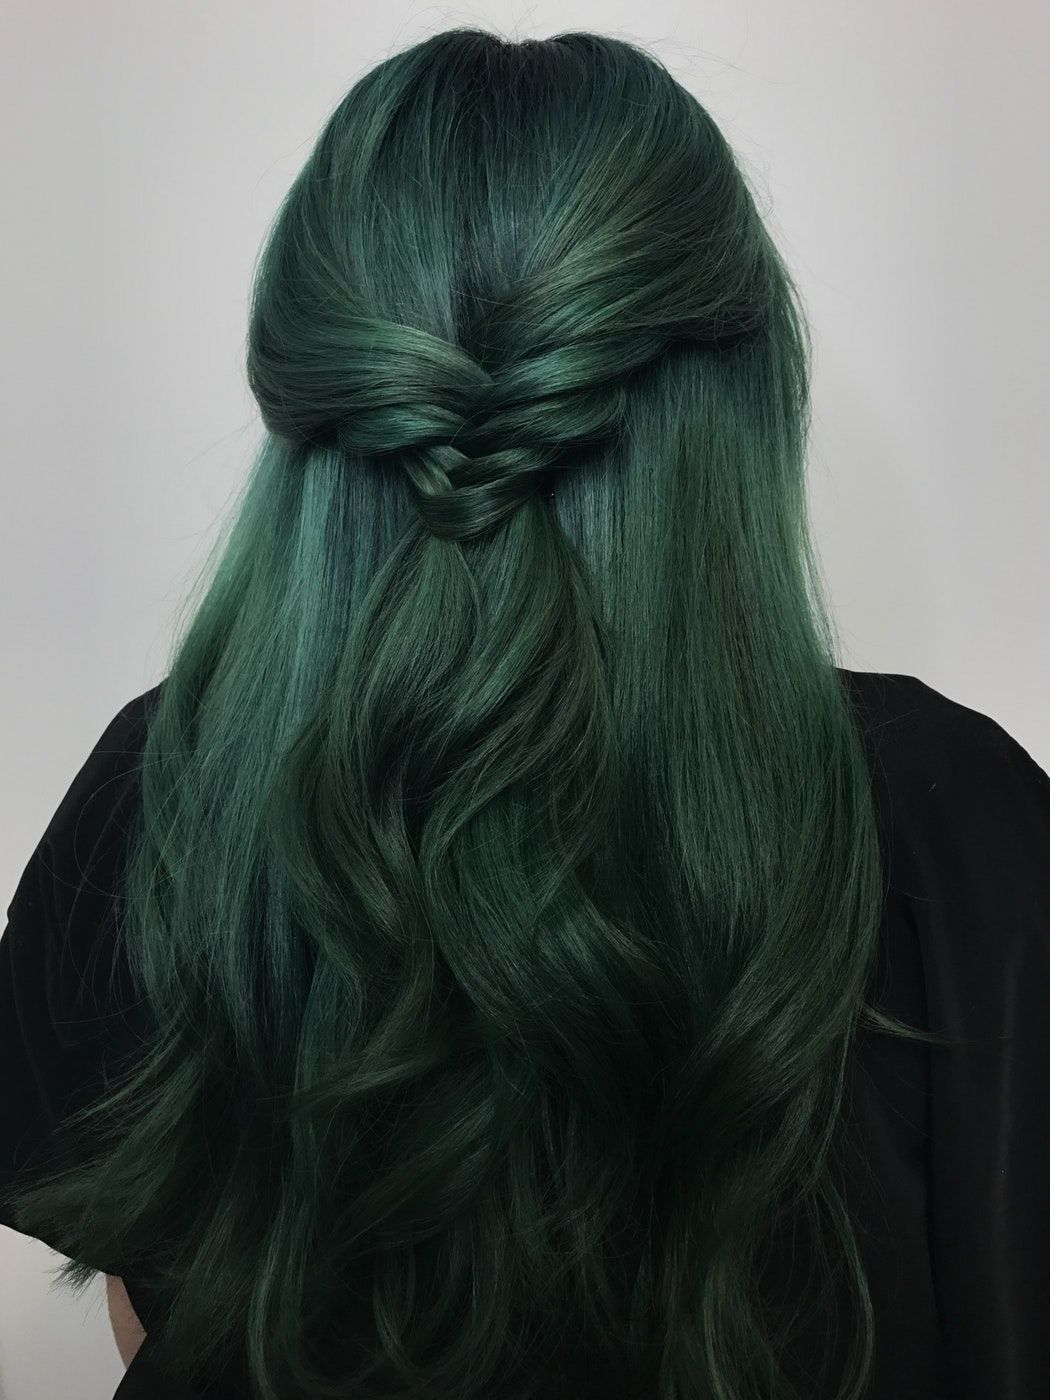 sea witch hair goals pulp riot